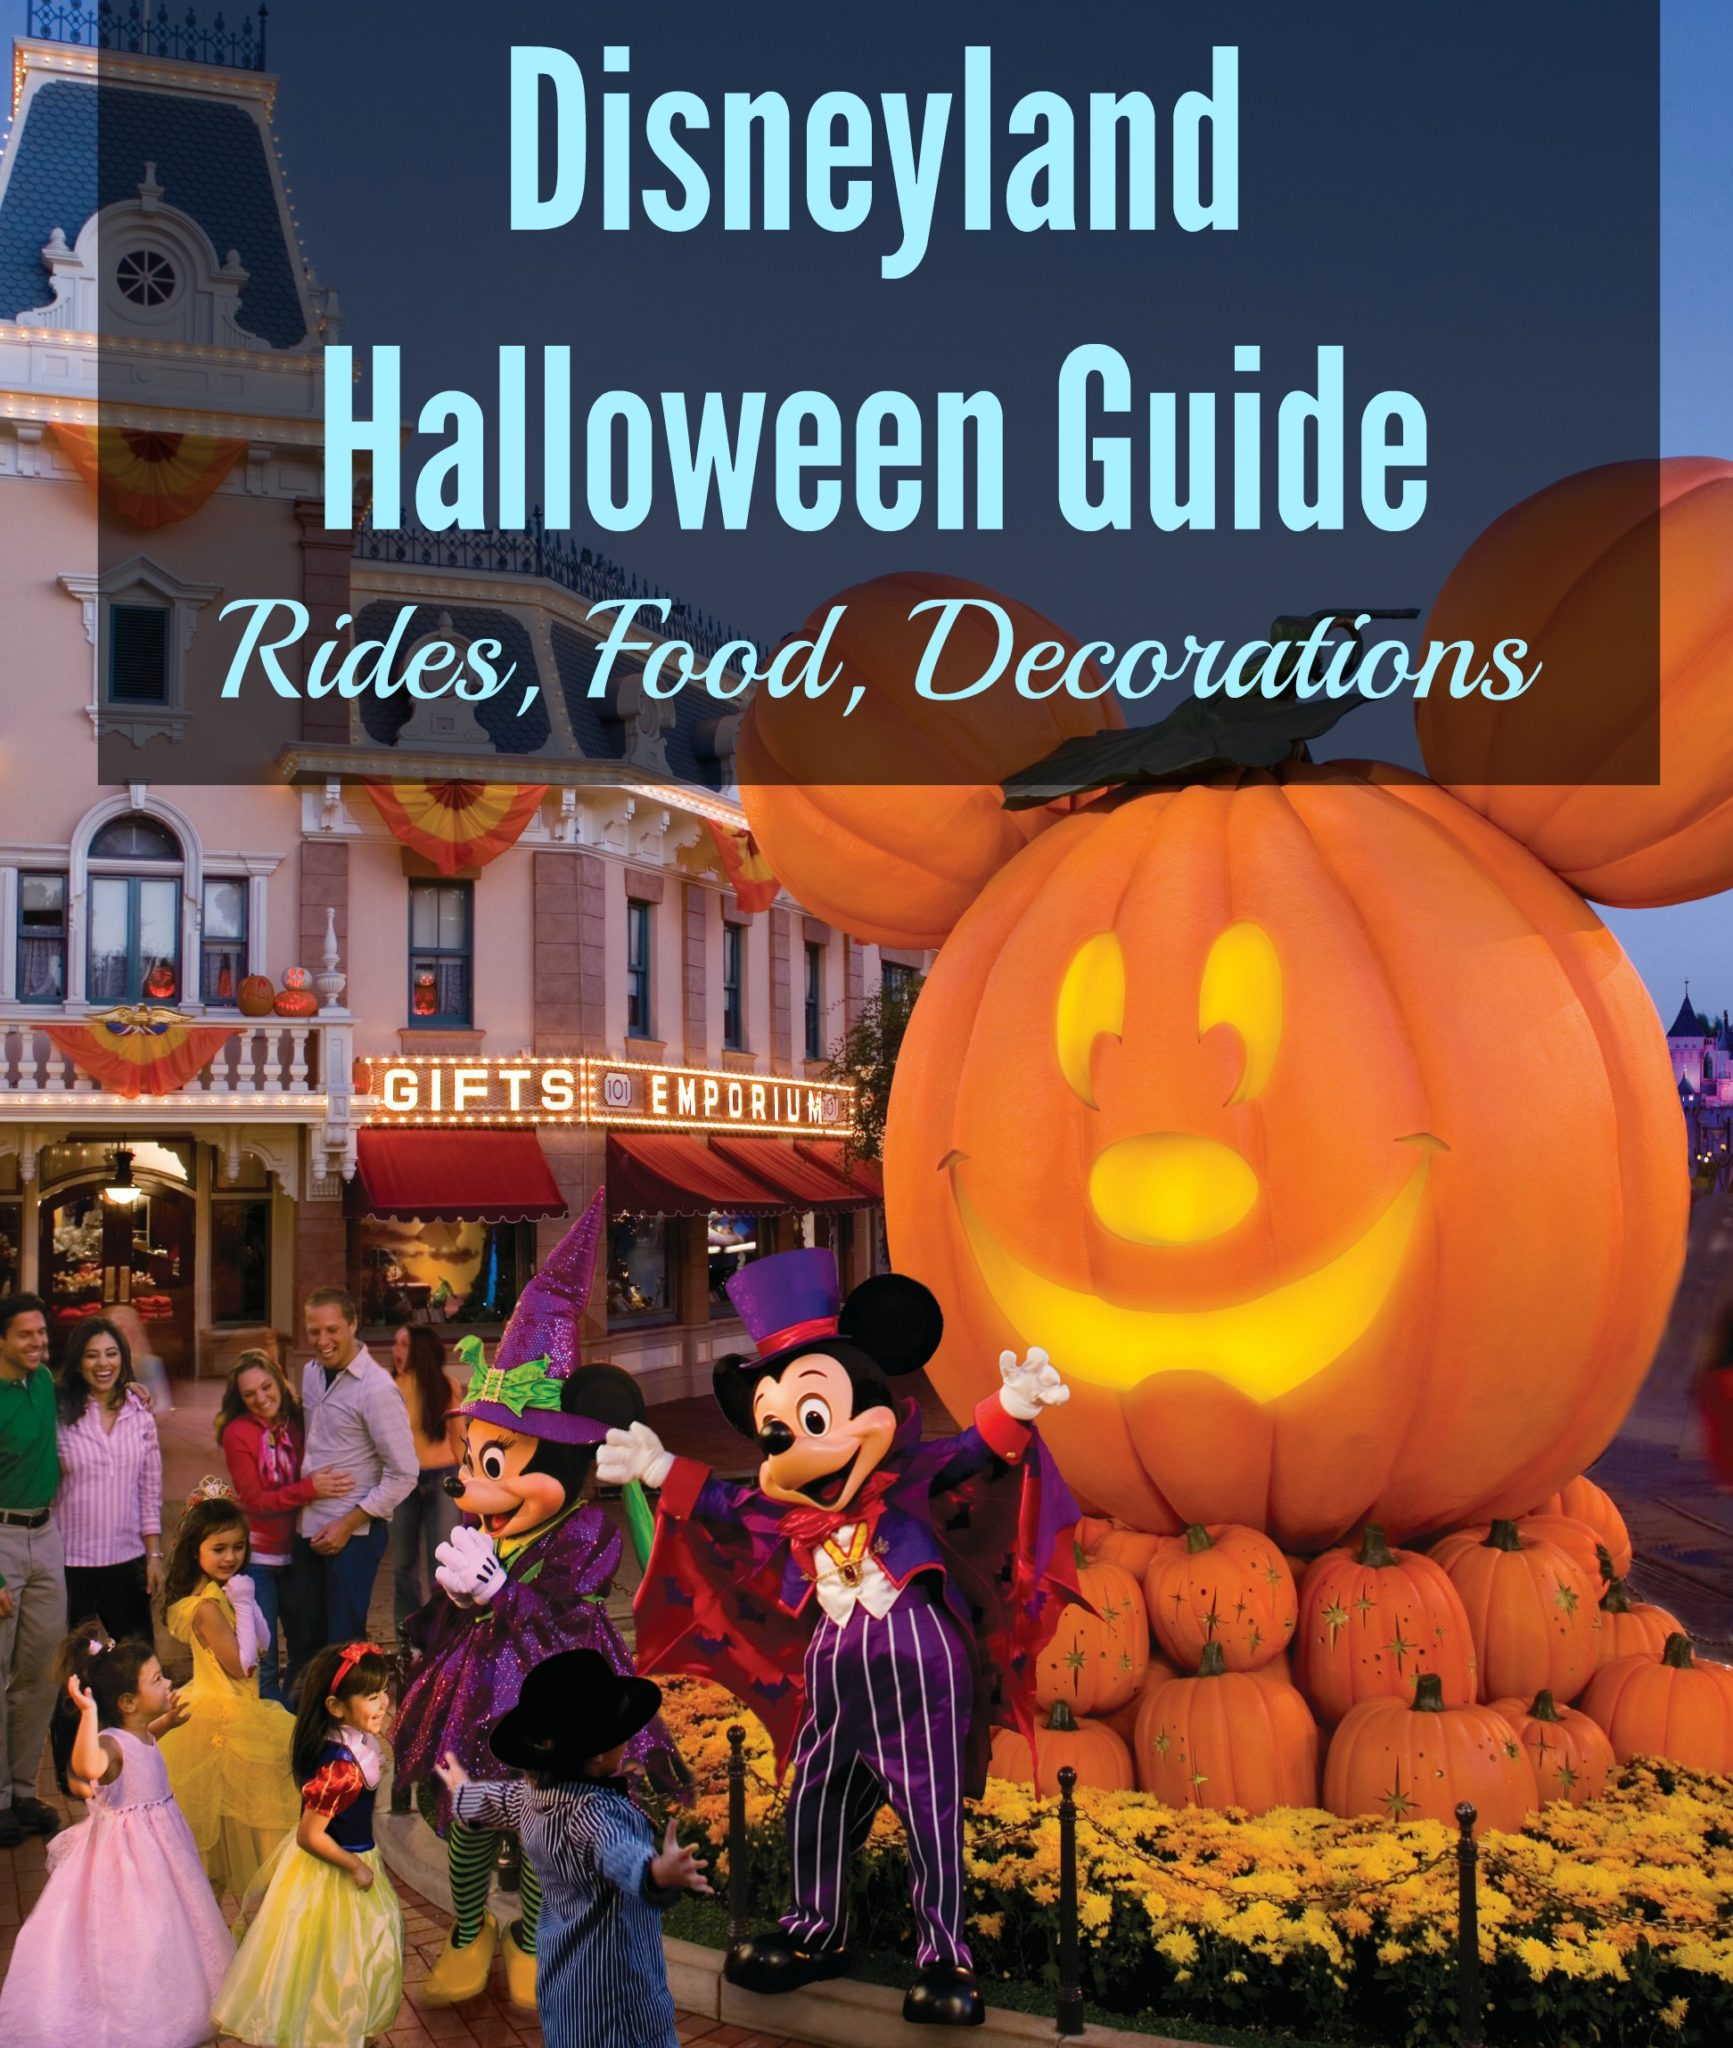 Best Food At Disneyland And California Adventure 2020 Halloween Disneyland Halloween 2020 Guide: Rides, Food, Decorations